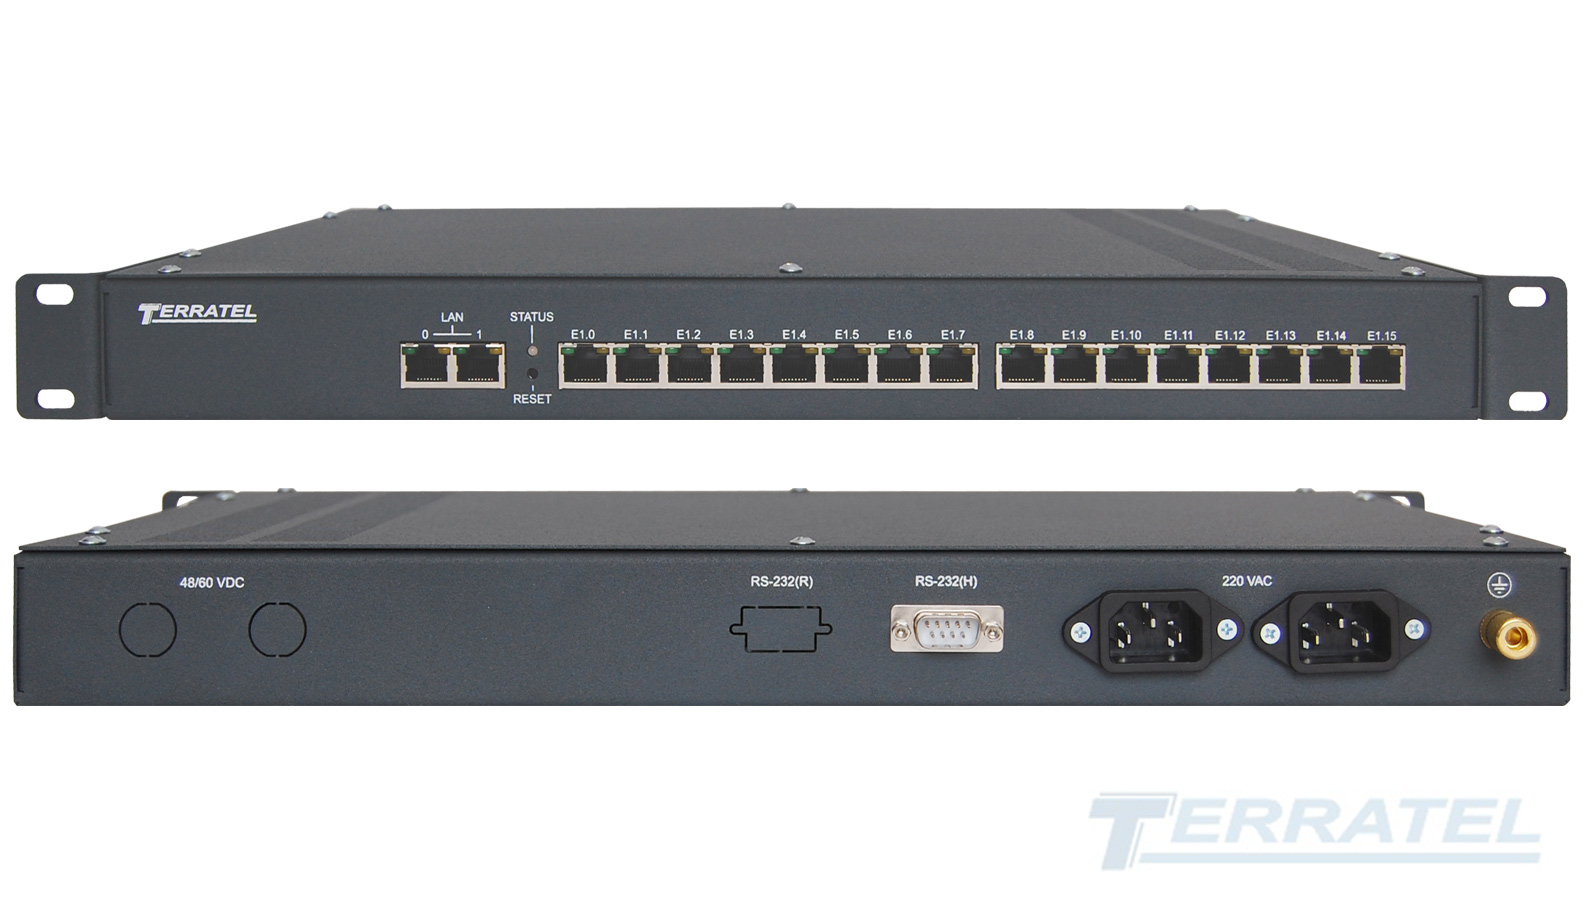 SS7 to SIP Trunk VOIP Gateway, integration to IP, IMS, NGN, 16 E1, SS7, MTP2, MTP3, ISUP, codecs G.711, G.723, G.726, G.729, T.38